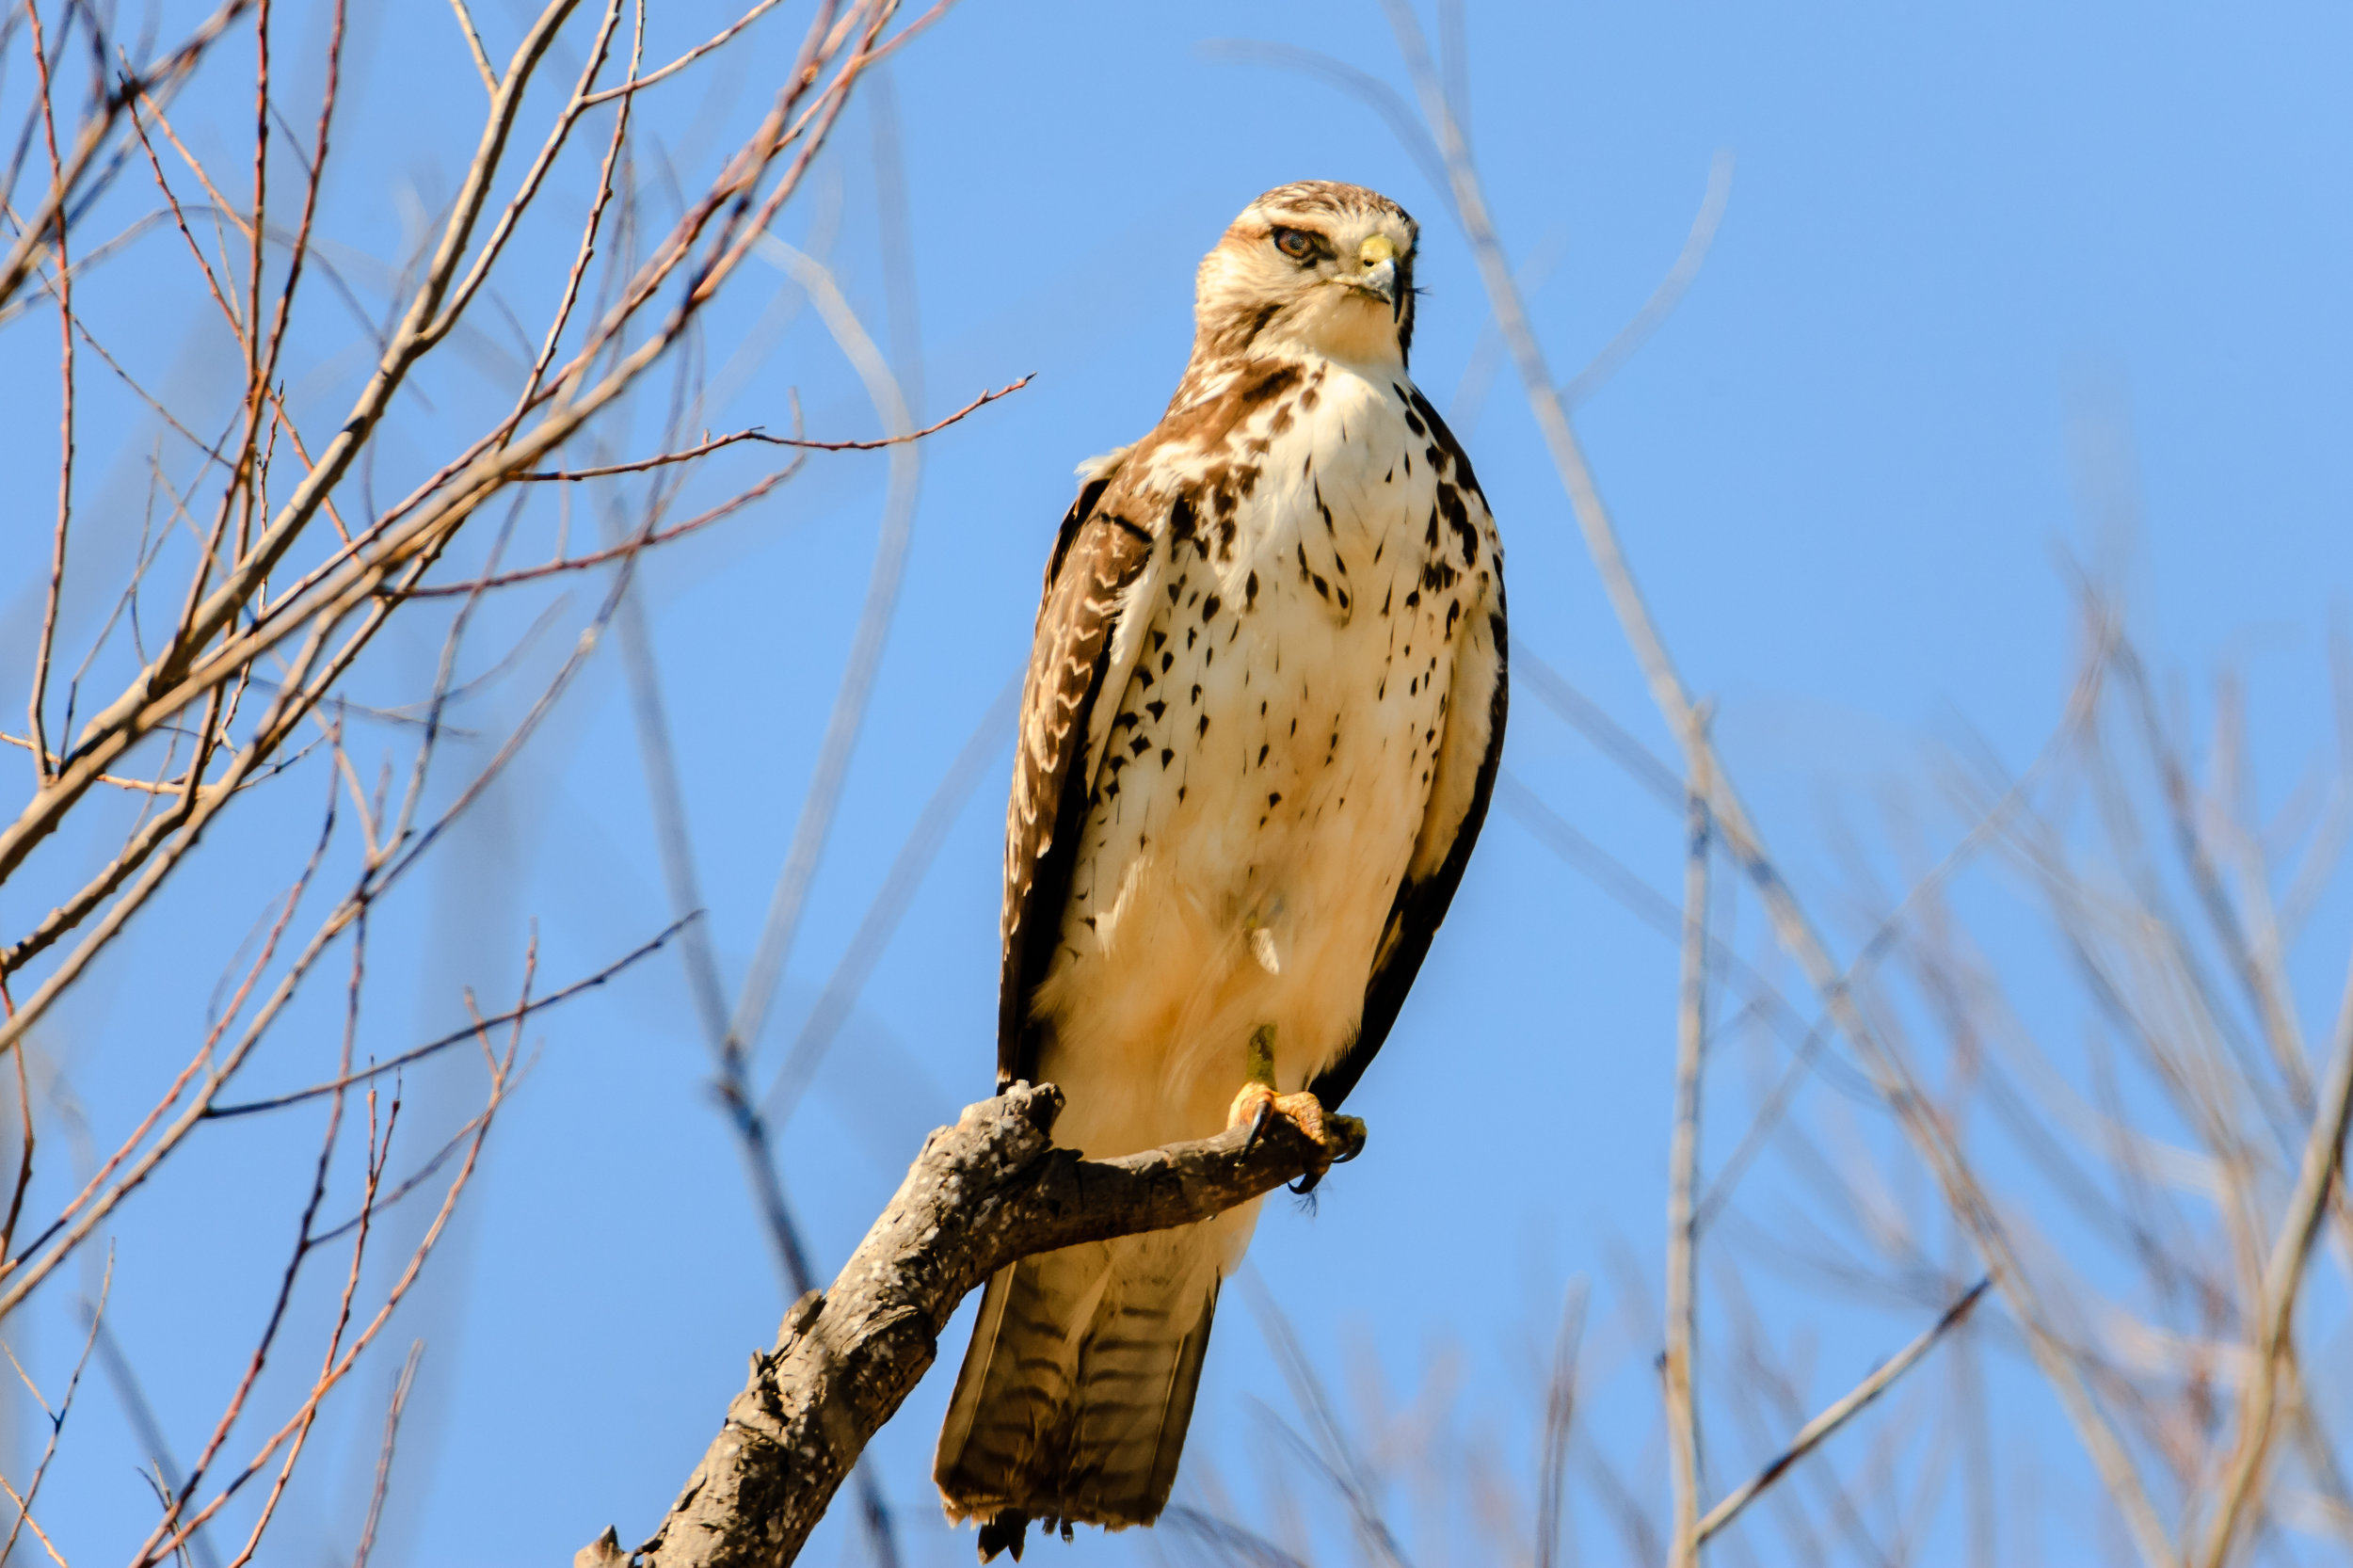 Species: Swainson's Hawk Photo Credit: Damian Martinez Date: February 2017 Location: Cagnon Rd., Bexar County